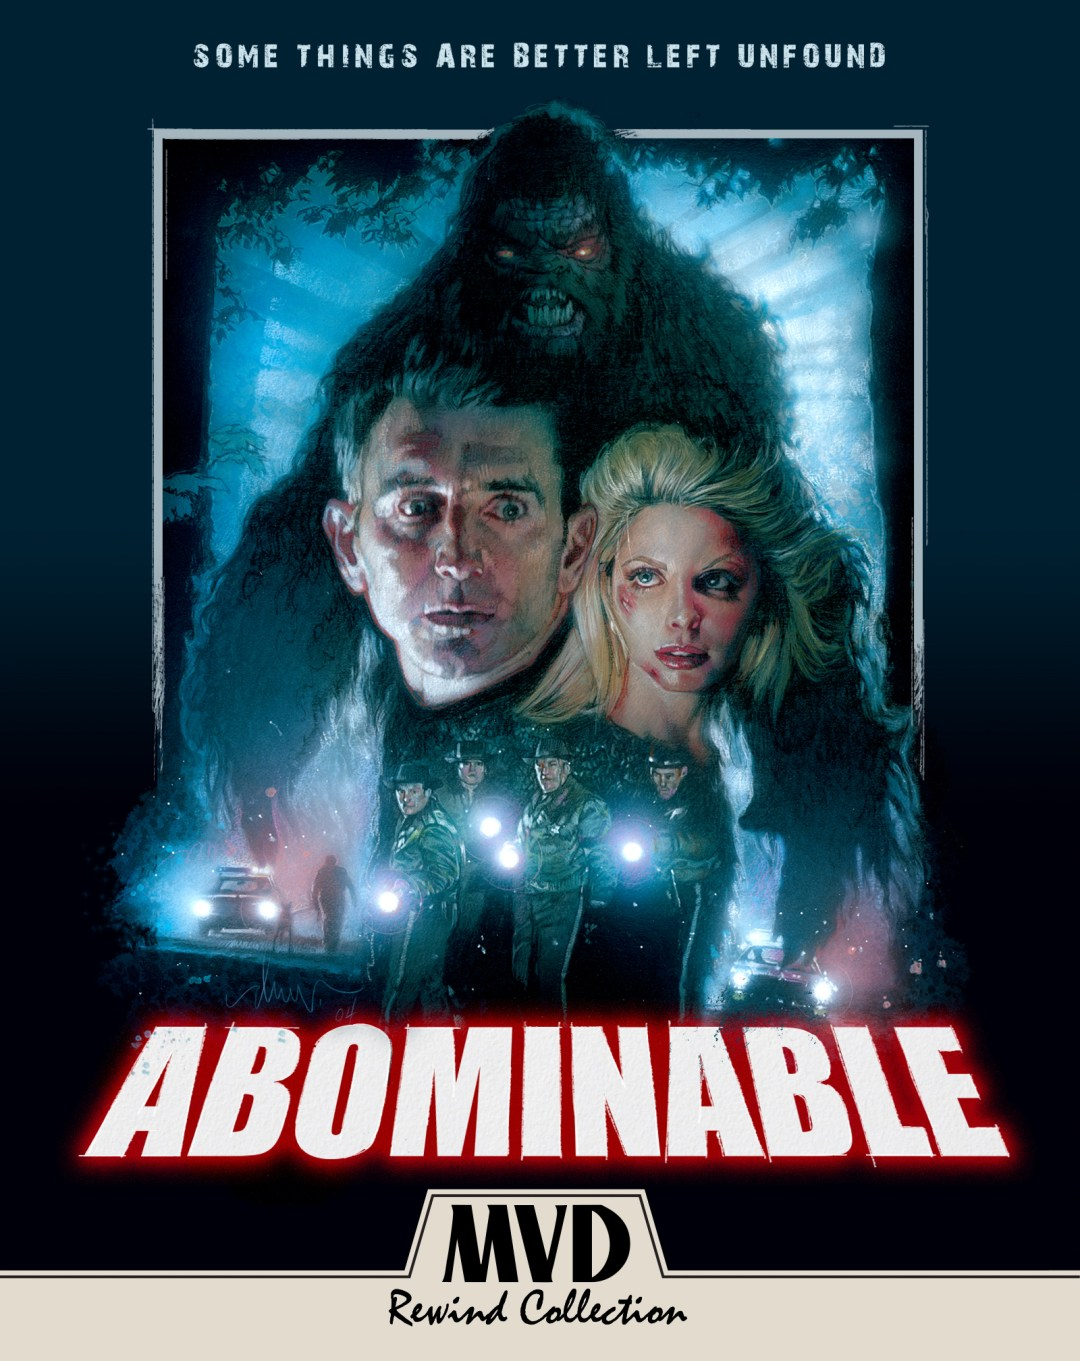 'Abominable' (2006) – Special Edition Blu-ray/DVD Available 6/12